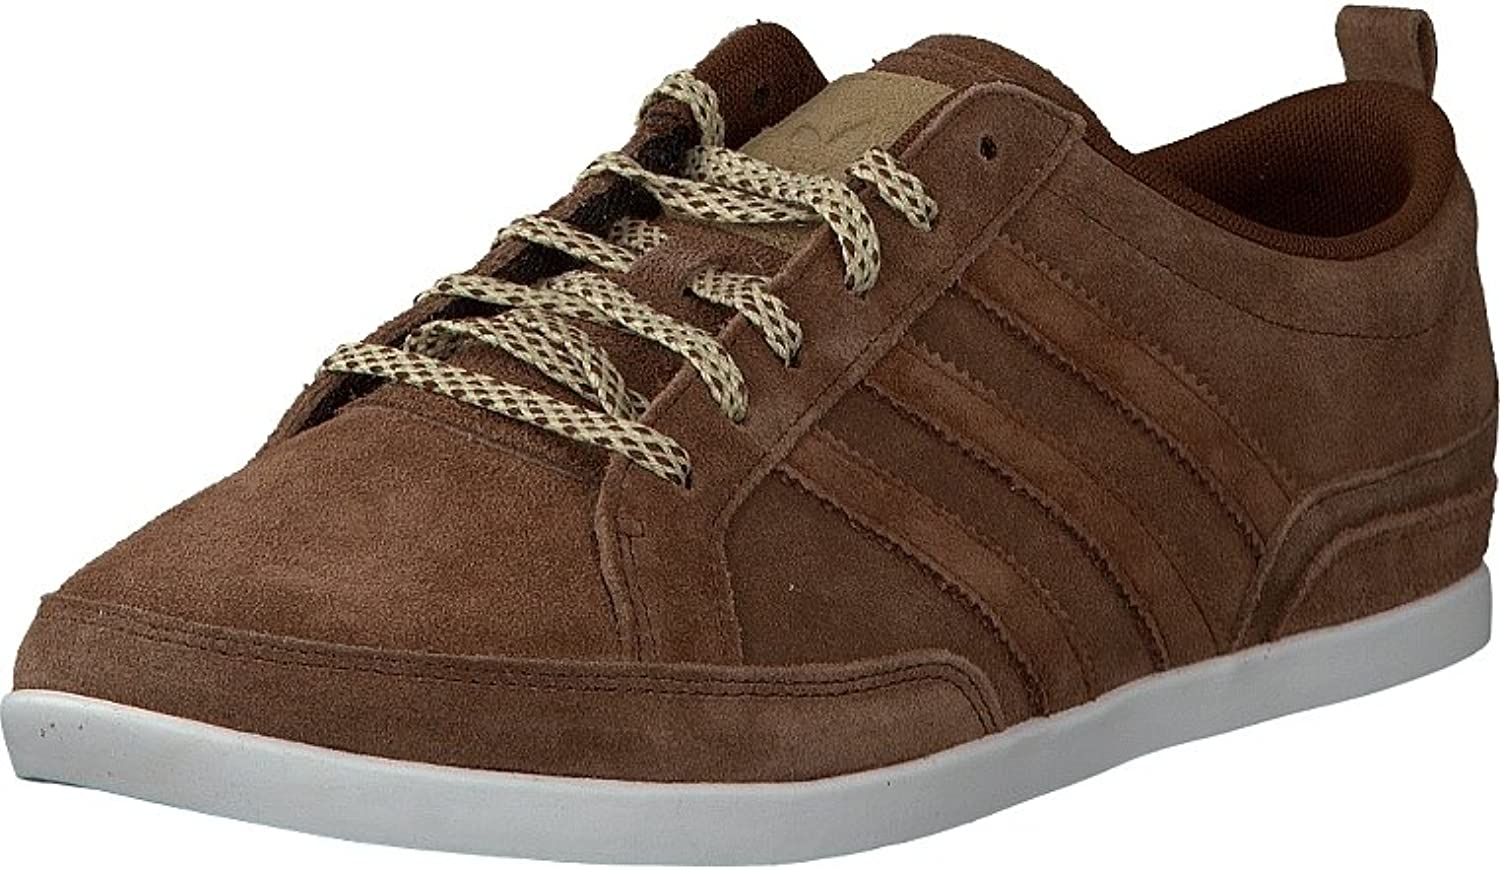 Adidas Originals Men's ADI UP LOW Low-Top Sneakers Brown Size  12.5 UK